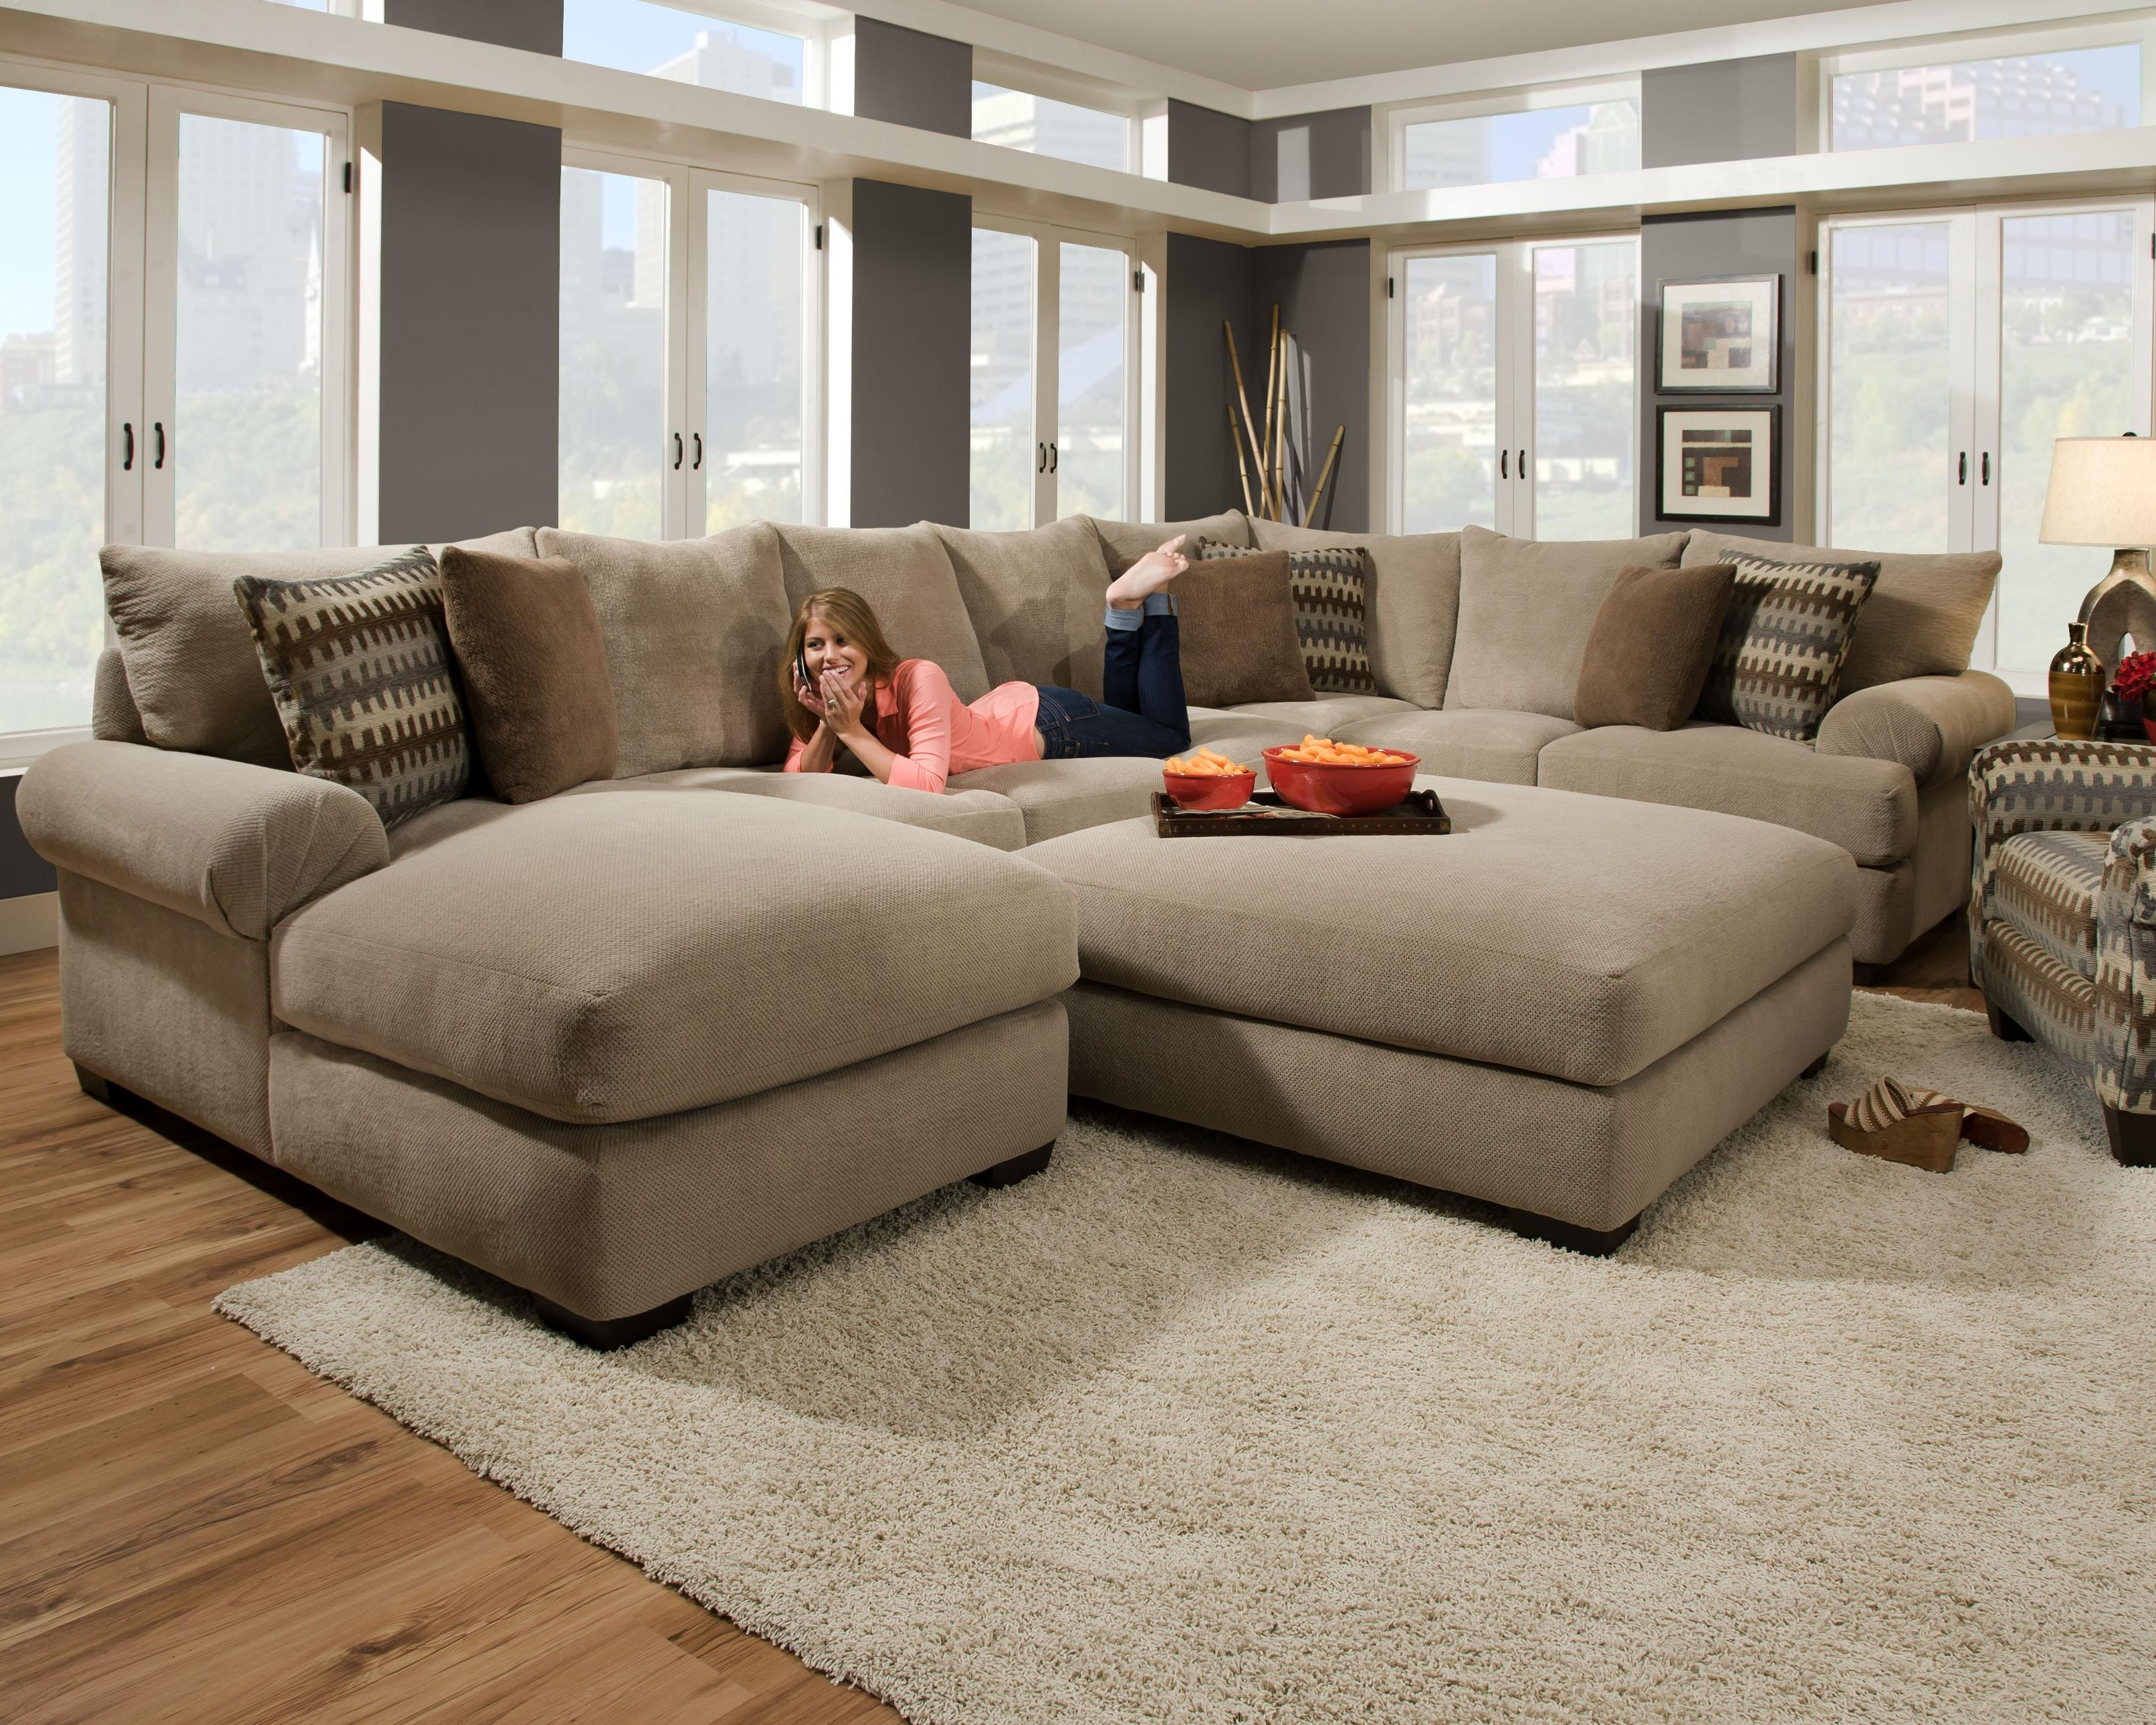 Sectional Sofas With Ottoman With Well Known Beautiful Sectional Sofa With Chaise And Ottoman Pictures (View 8 of 15)